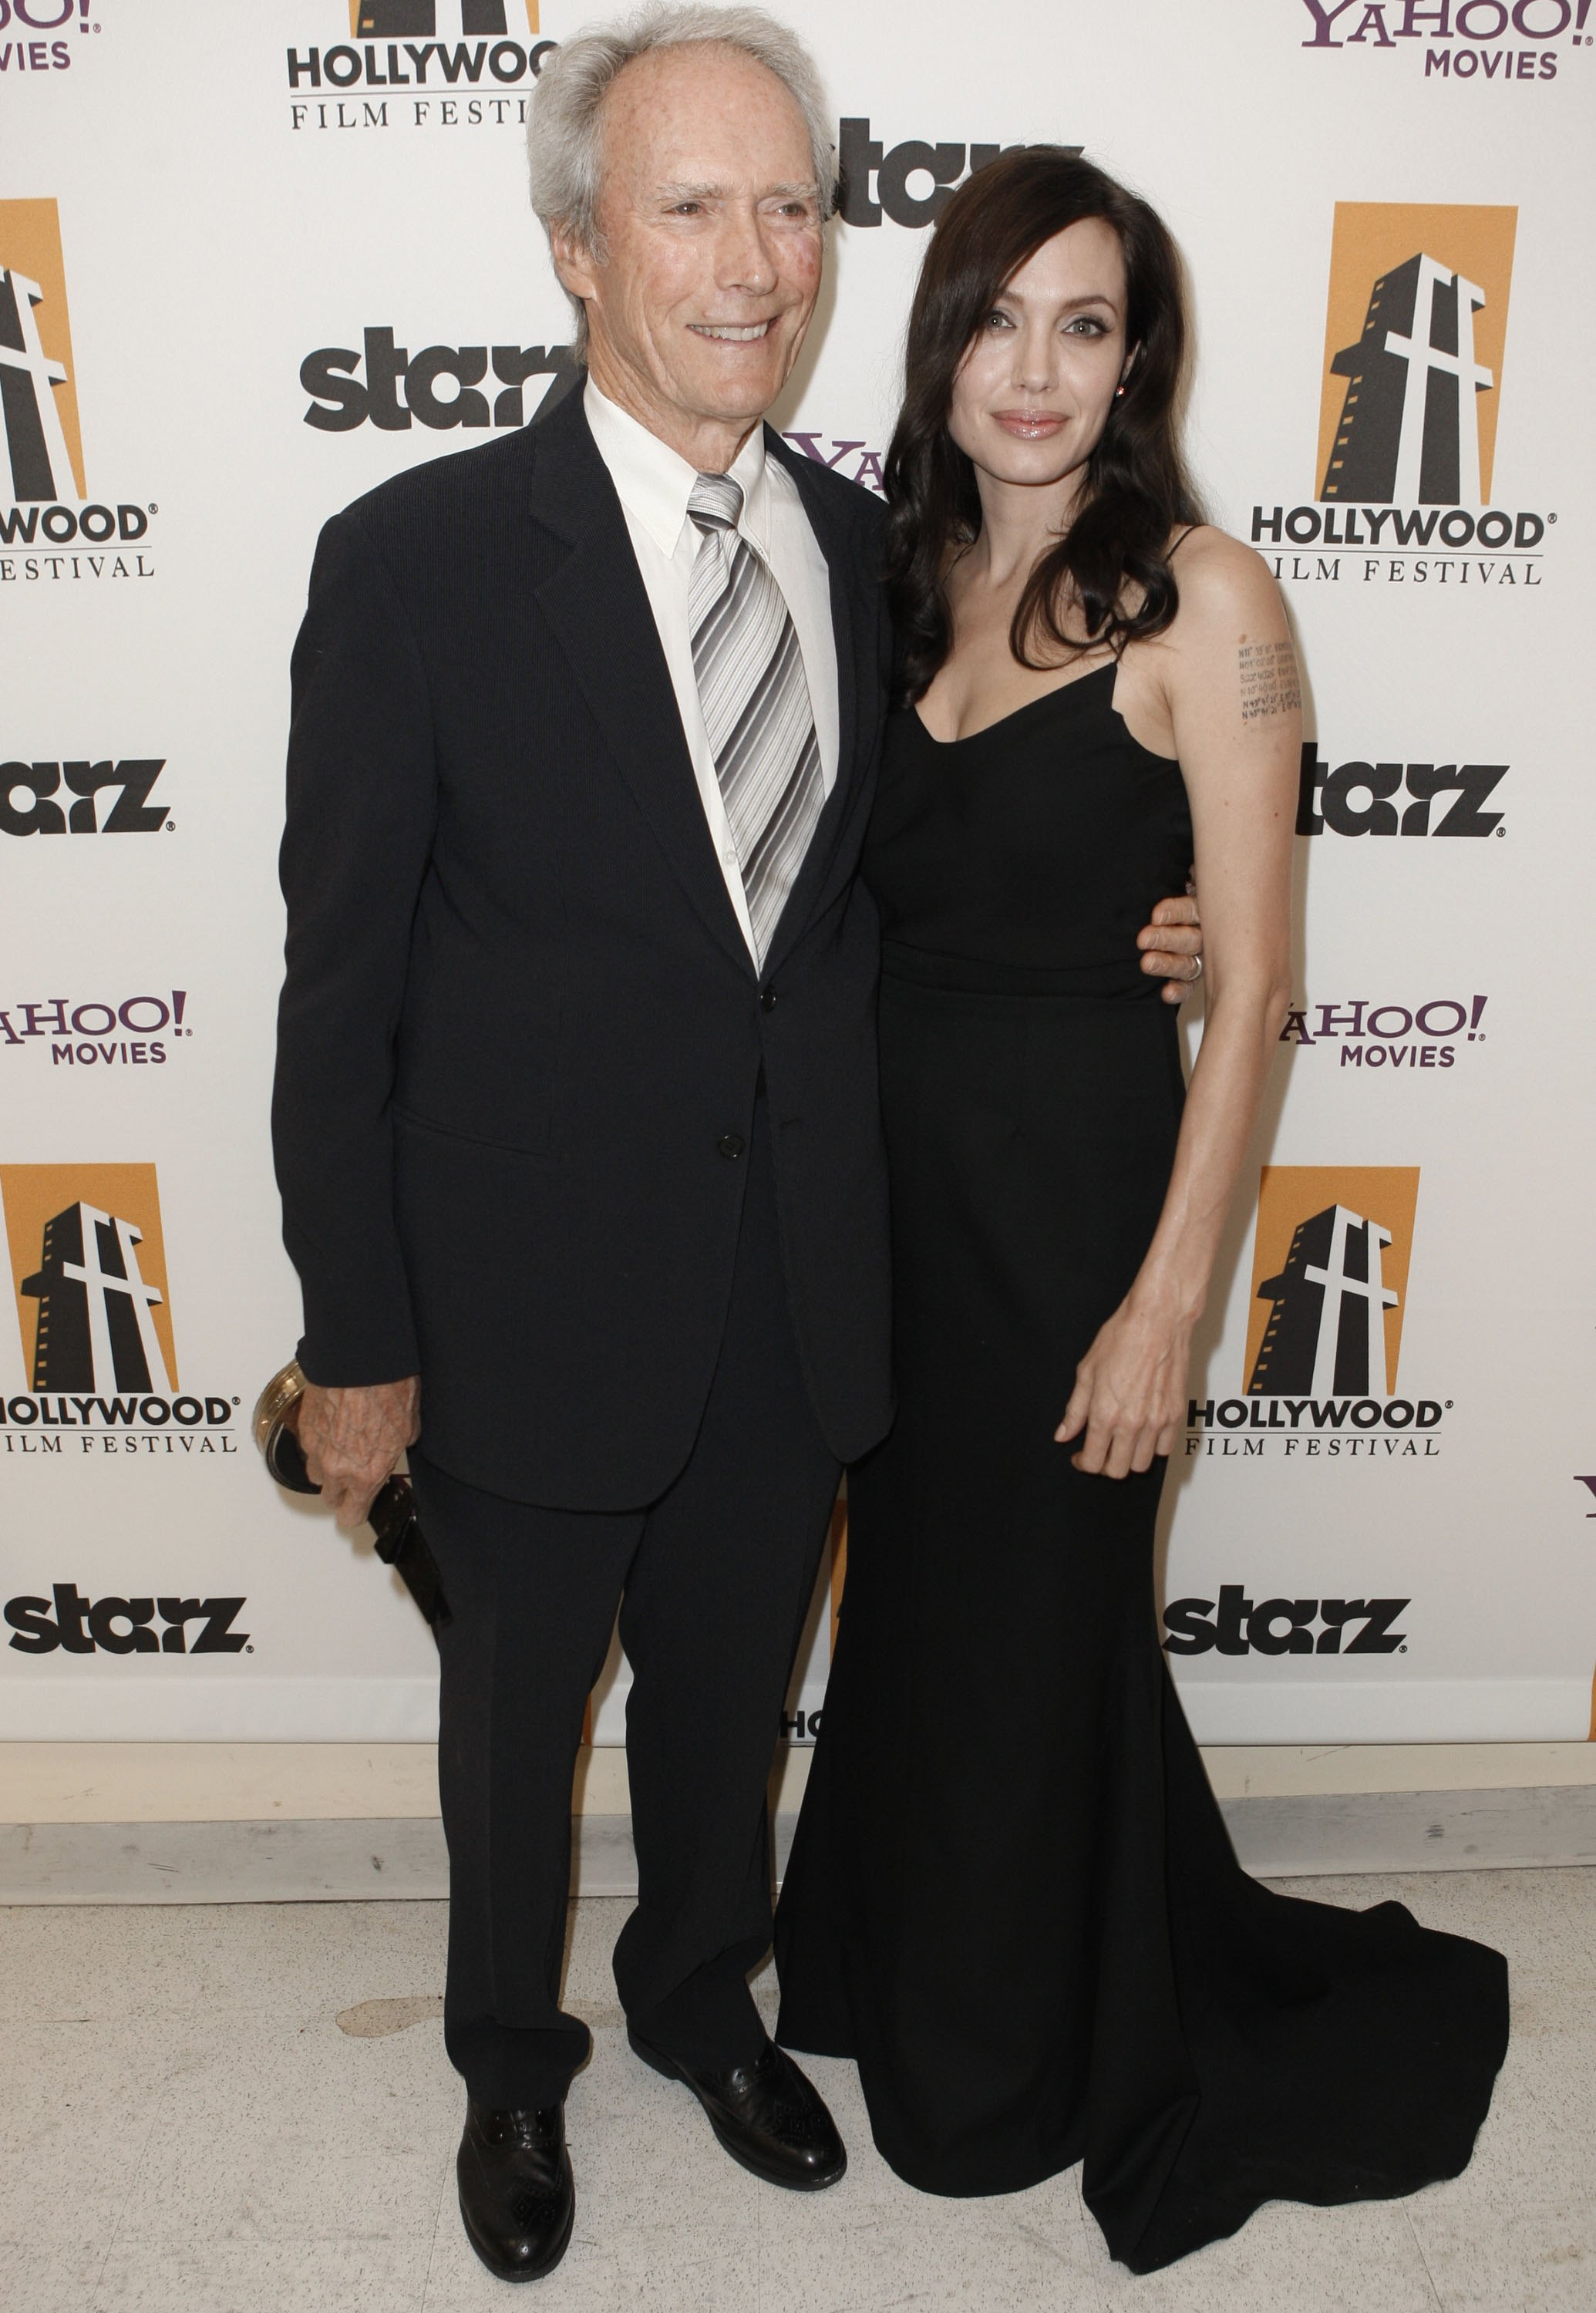 70189_Angelina_Jolie_and_Clint_Eastwood_-_backstage_at_the_Hollywood_Awards_Gala_CU_ISA_002_122_539lo.jpg